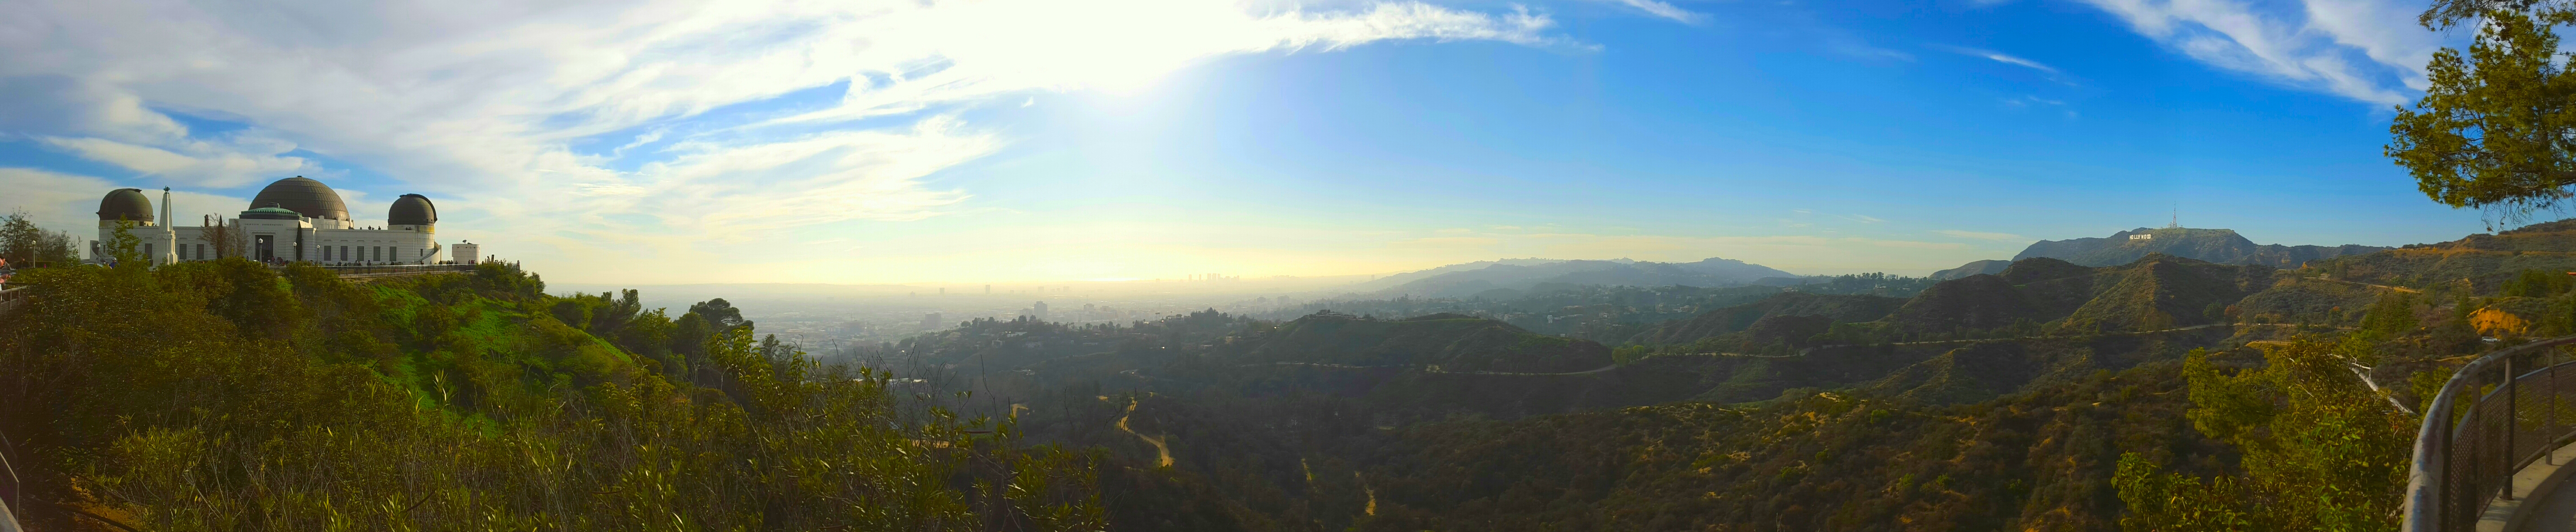 Griffith Observatory daytime